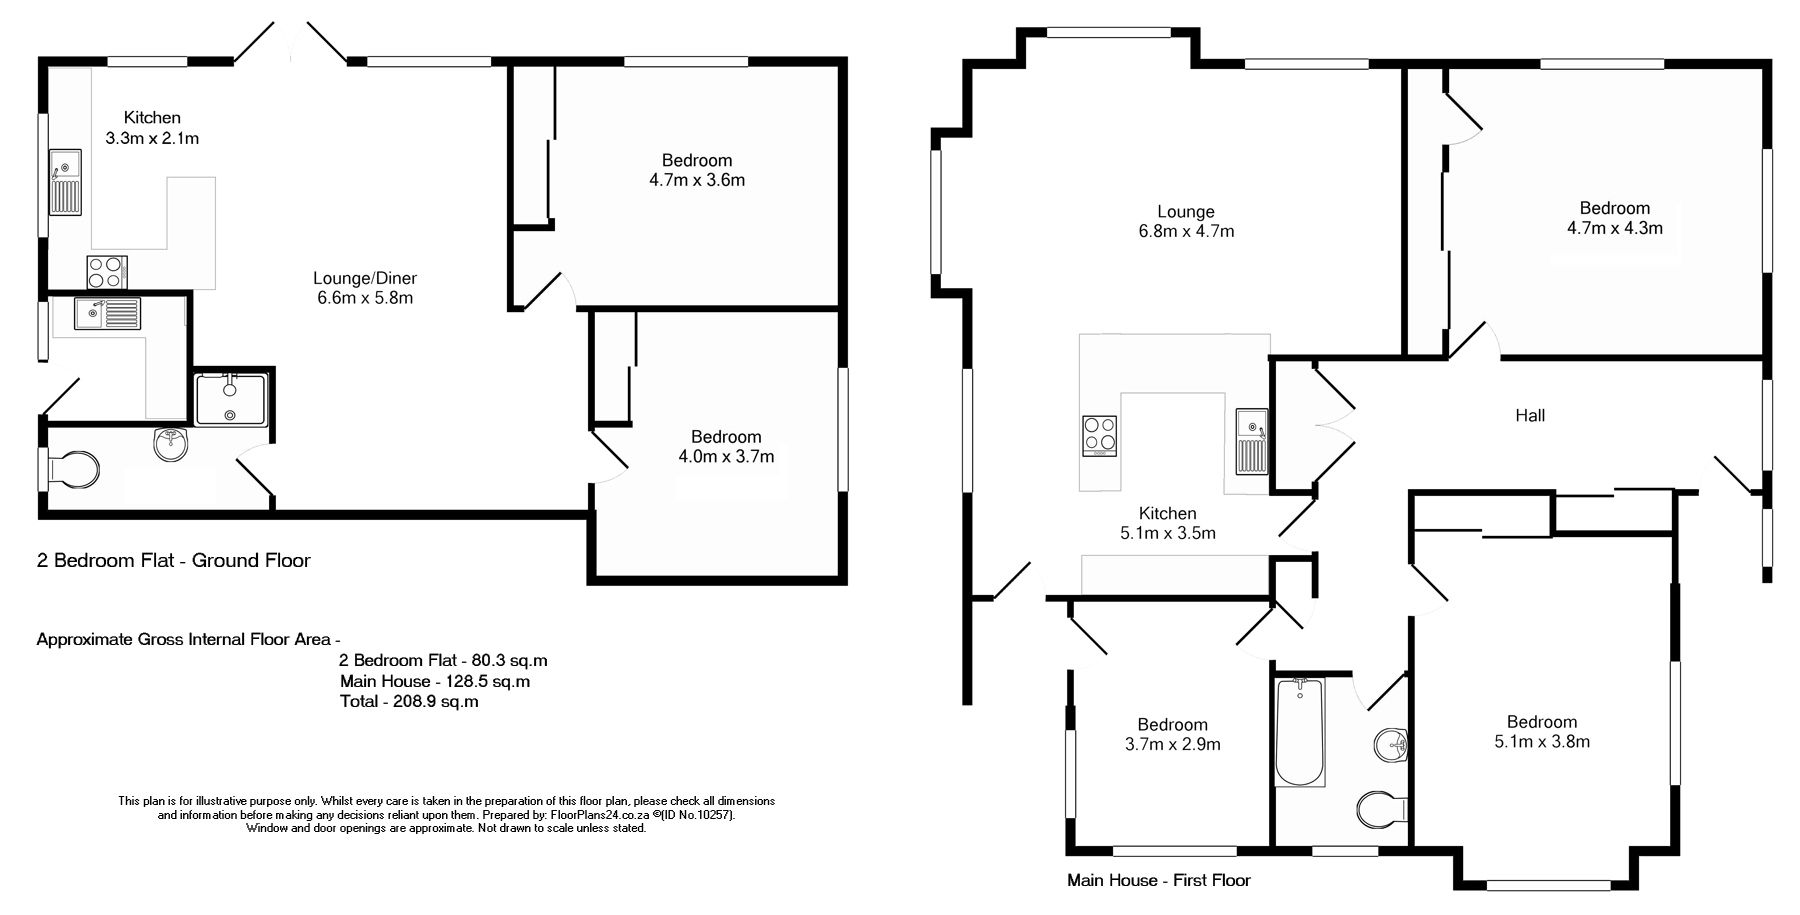 Classic Layout 3 Bedroom House With Separate Self Contained 2 Bedroom Flat 208 Sq M Floorplans24 Delivers A Solution That Maine House Layout Floor Plans